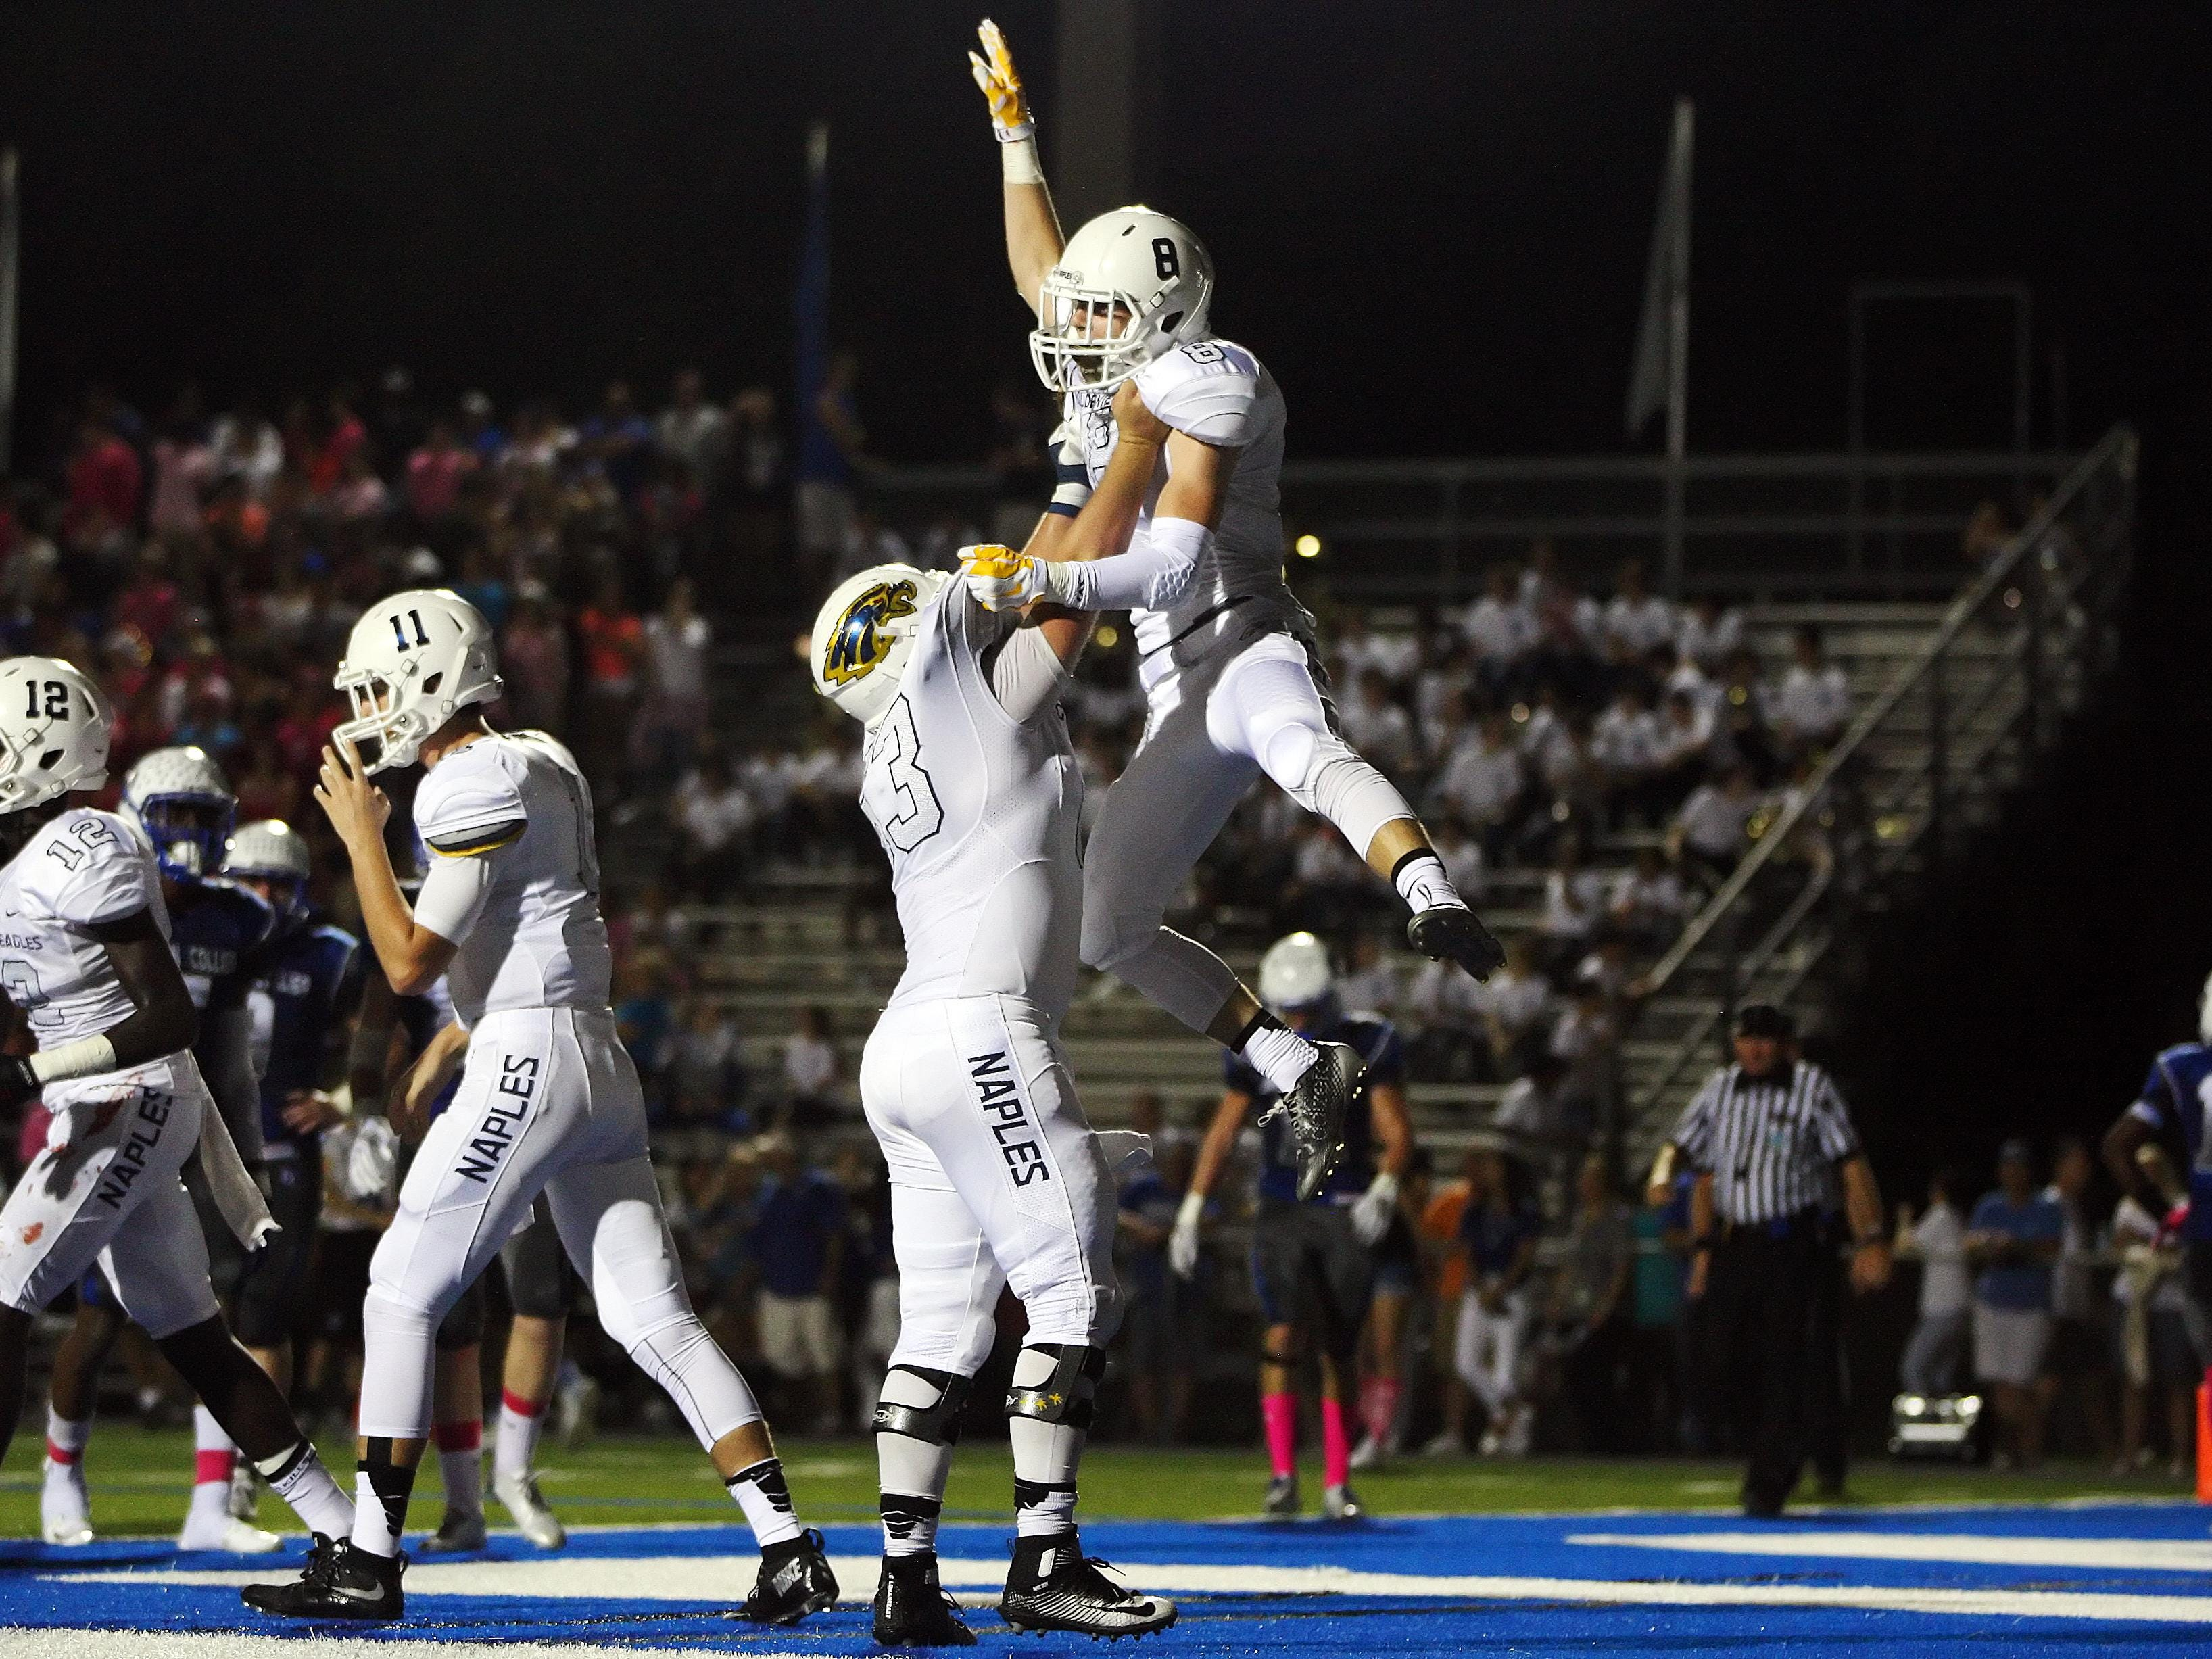 Naples High School's Davis Olson, bottom middle, and Lucas Lee, celebrate Lee's touchdown against Barron Collier on Friday at Barron Collier High School in Naples.